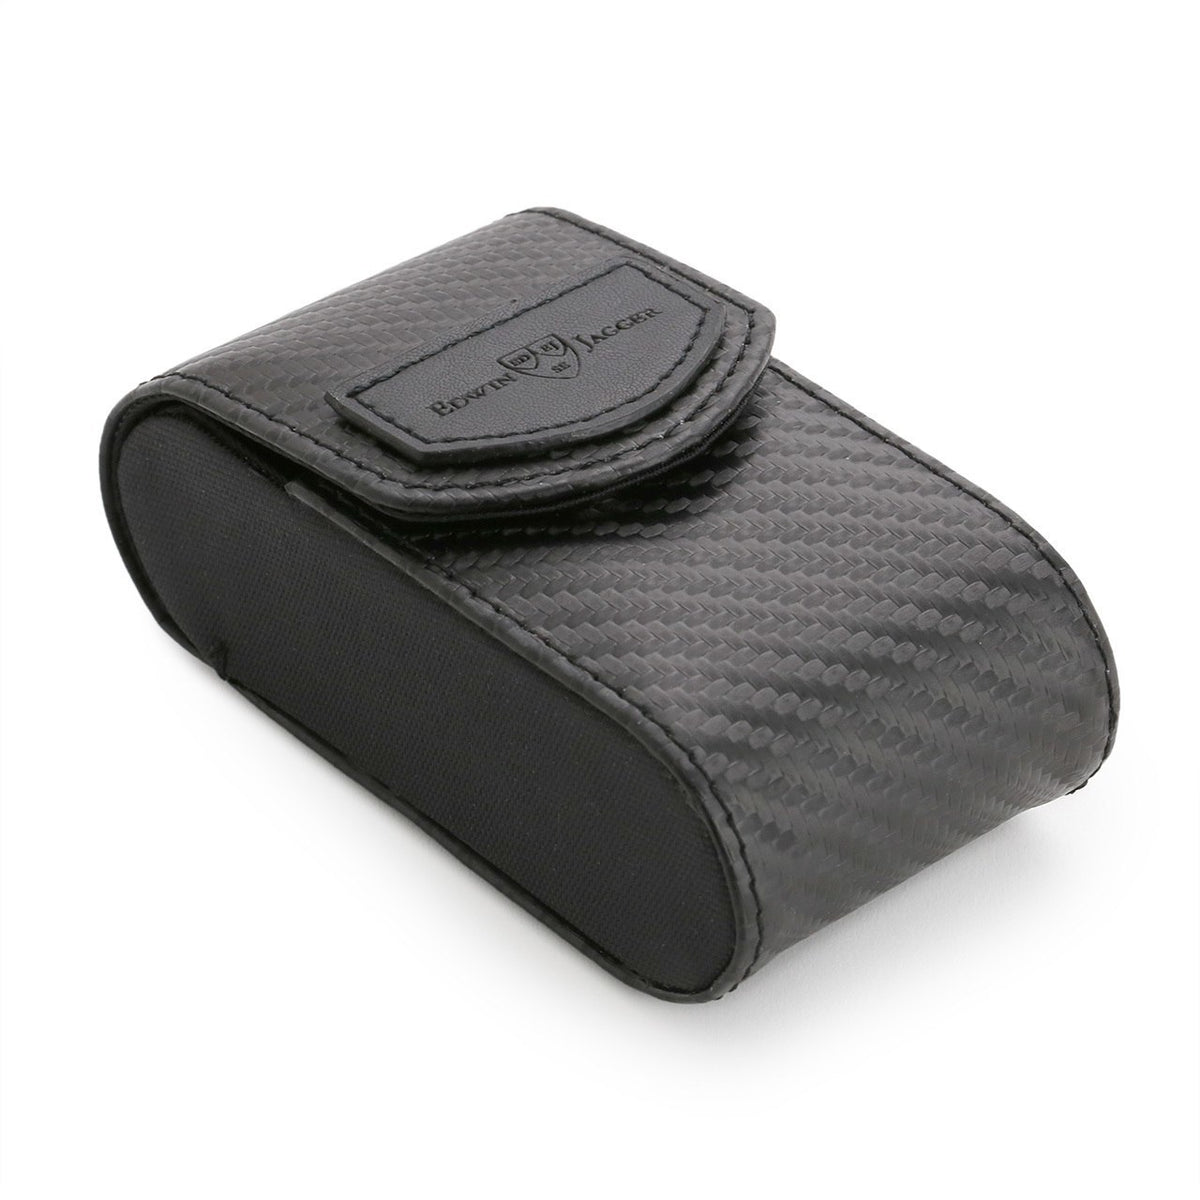 Edwin Jagger DE Safety Razor Case - Black Carbon Fibre Effect